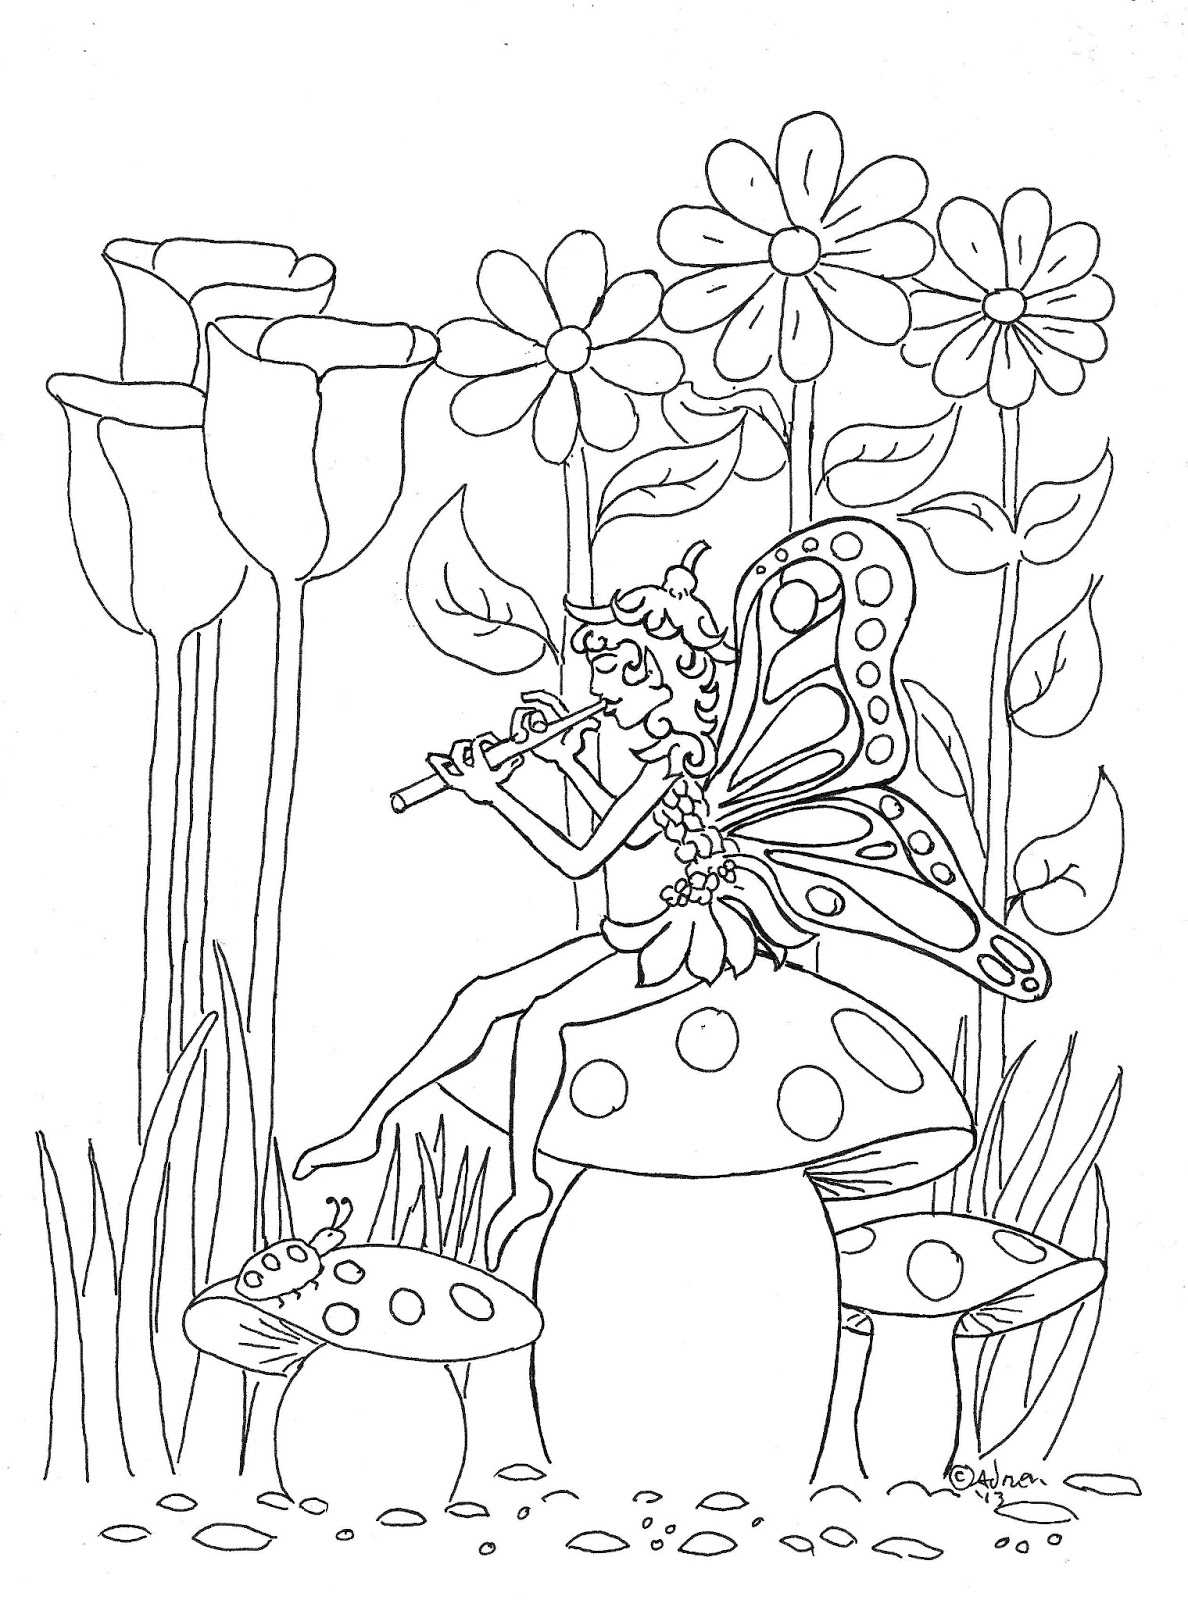 coloring pages of fairies and pixies picture of fairy rosetta in pixie coloring page netart coloring pixies pages of and fairies